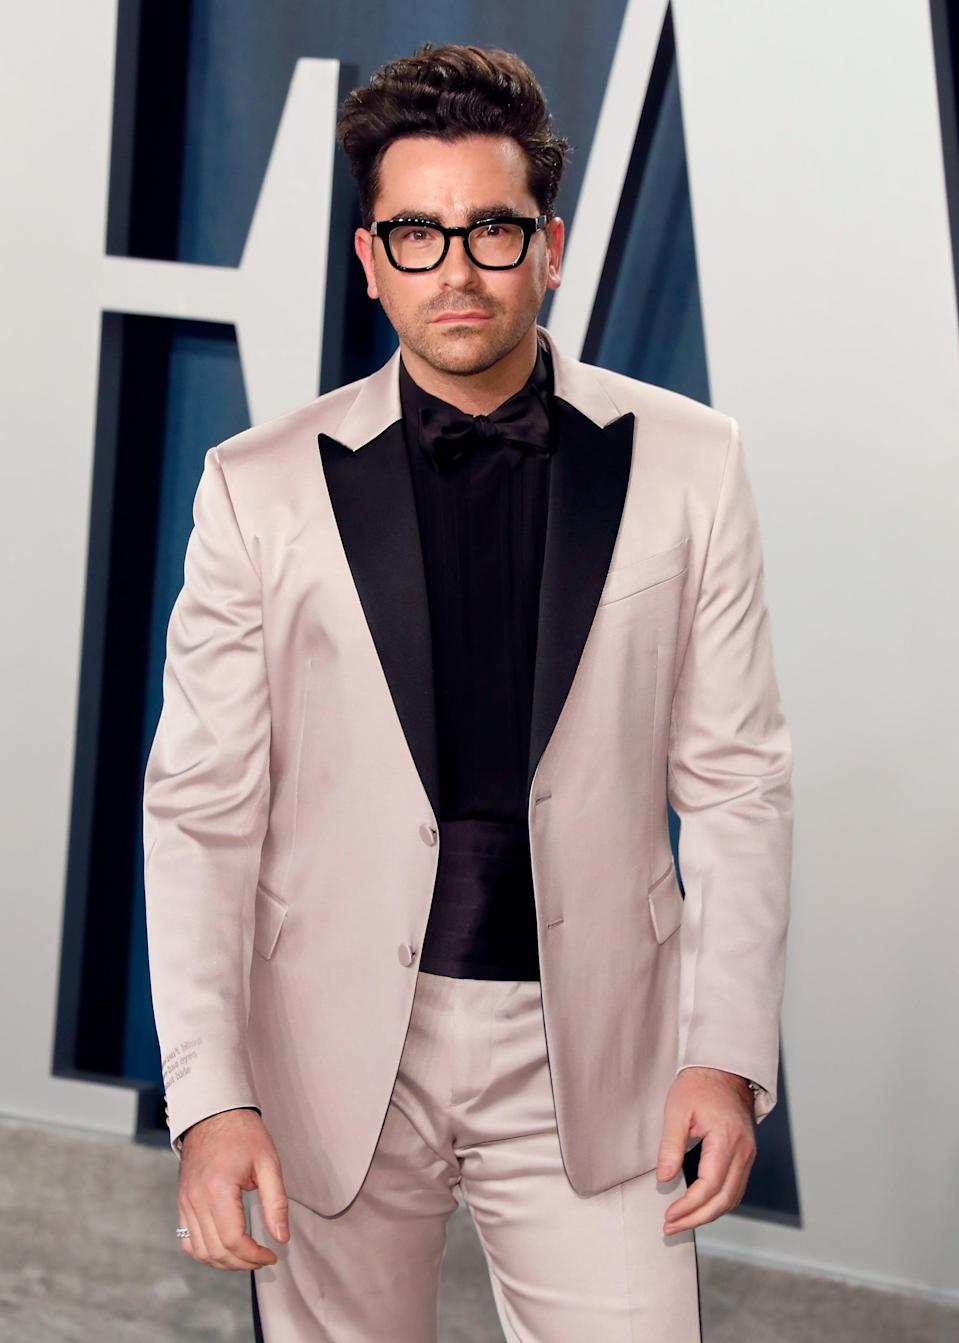 BEVERLY HILLS, CALIFORNIA - FEBRUARY 09:  Dan Levy attends the 2020 Vanity Fair Oscar Party at Wallis Annenberg Center for the Performing Arts on February 09, 2020 in Beverly Hills, California. (Photo by Taylor Hill/FilmMagic,)